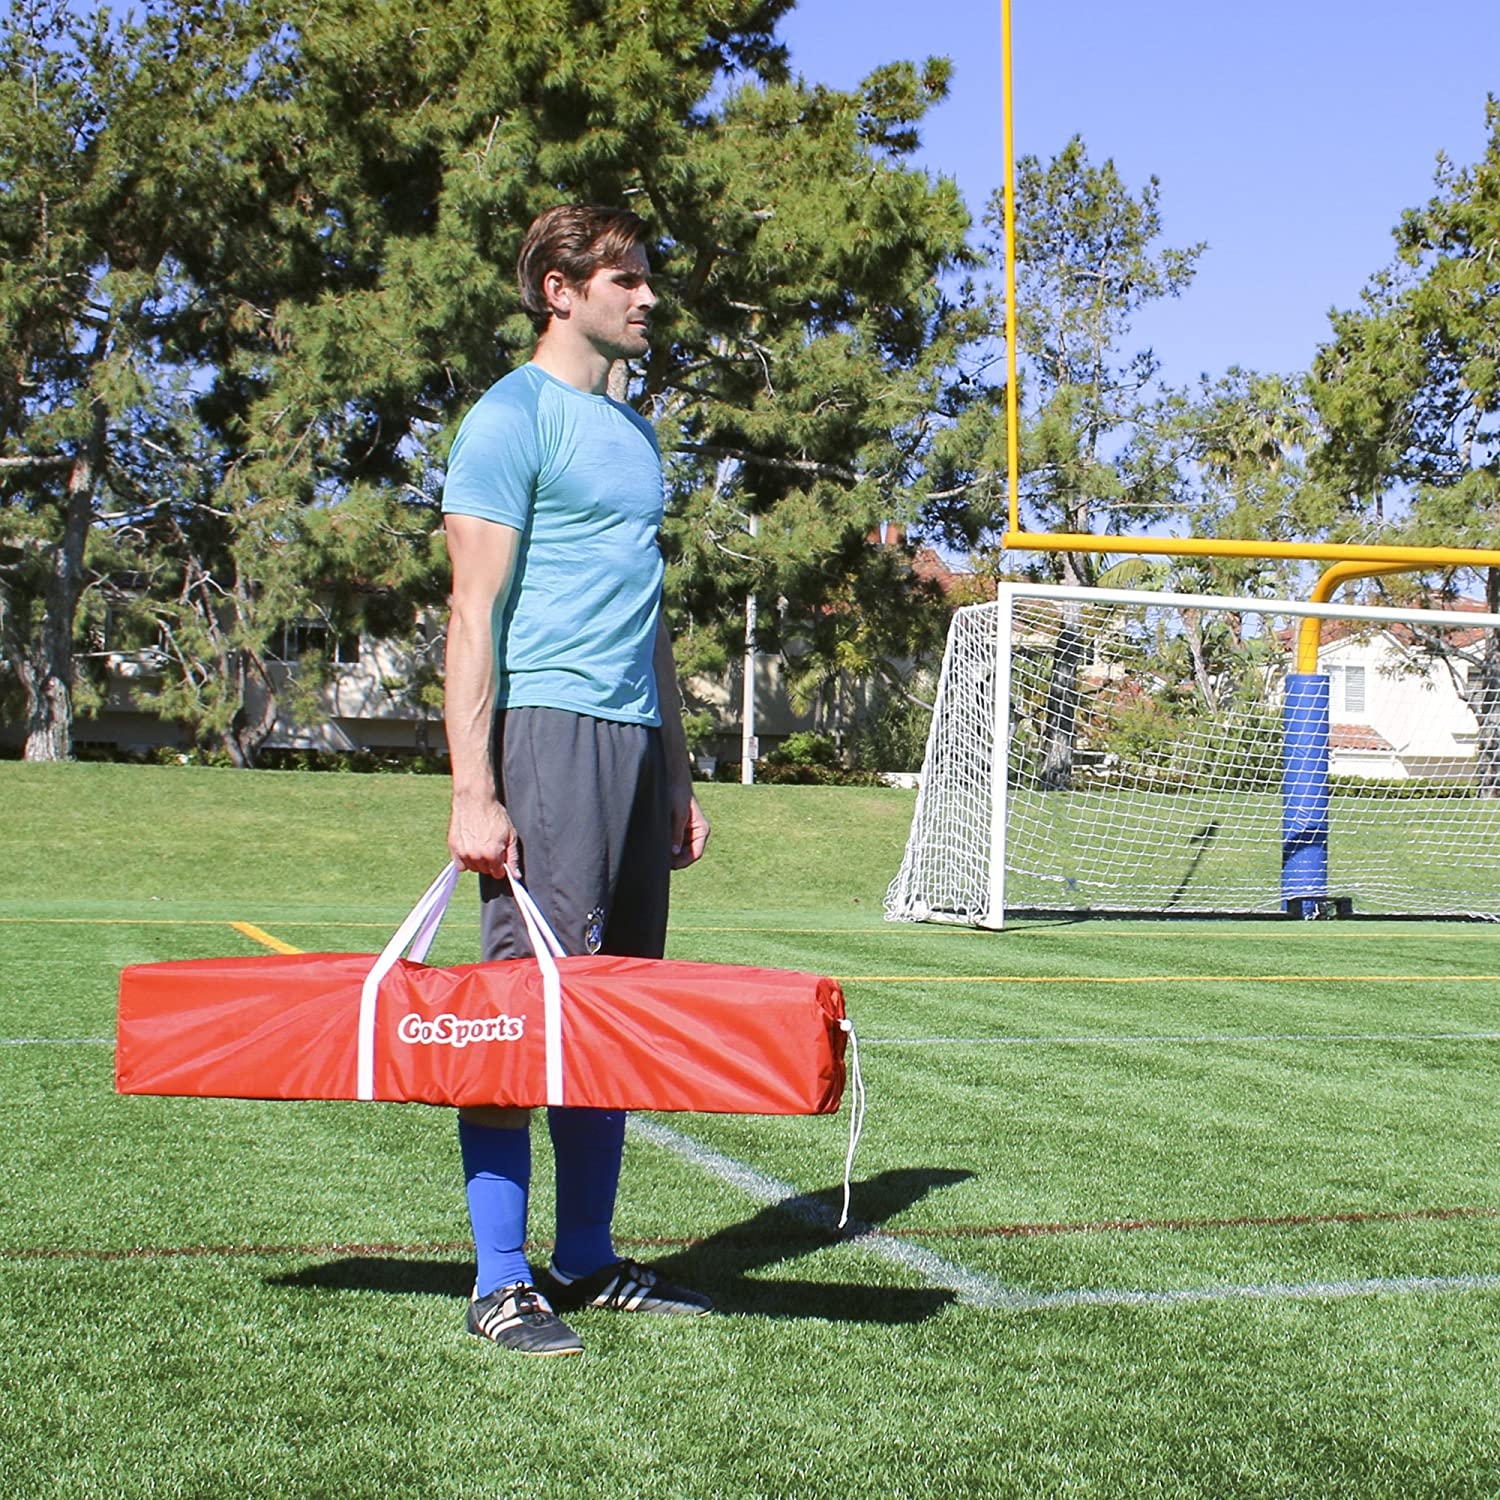 Choose 6 or 12 Goal Size 6 Training Cones /& Portable Carrying Case Includes 1 Elite Goal GoSports Elite Soccer Goals